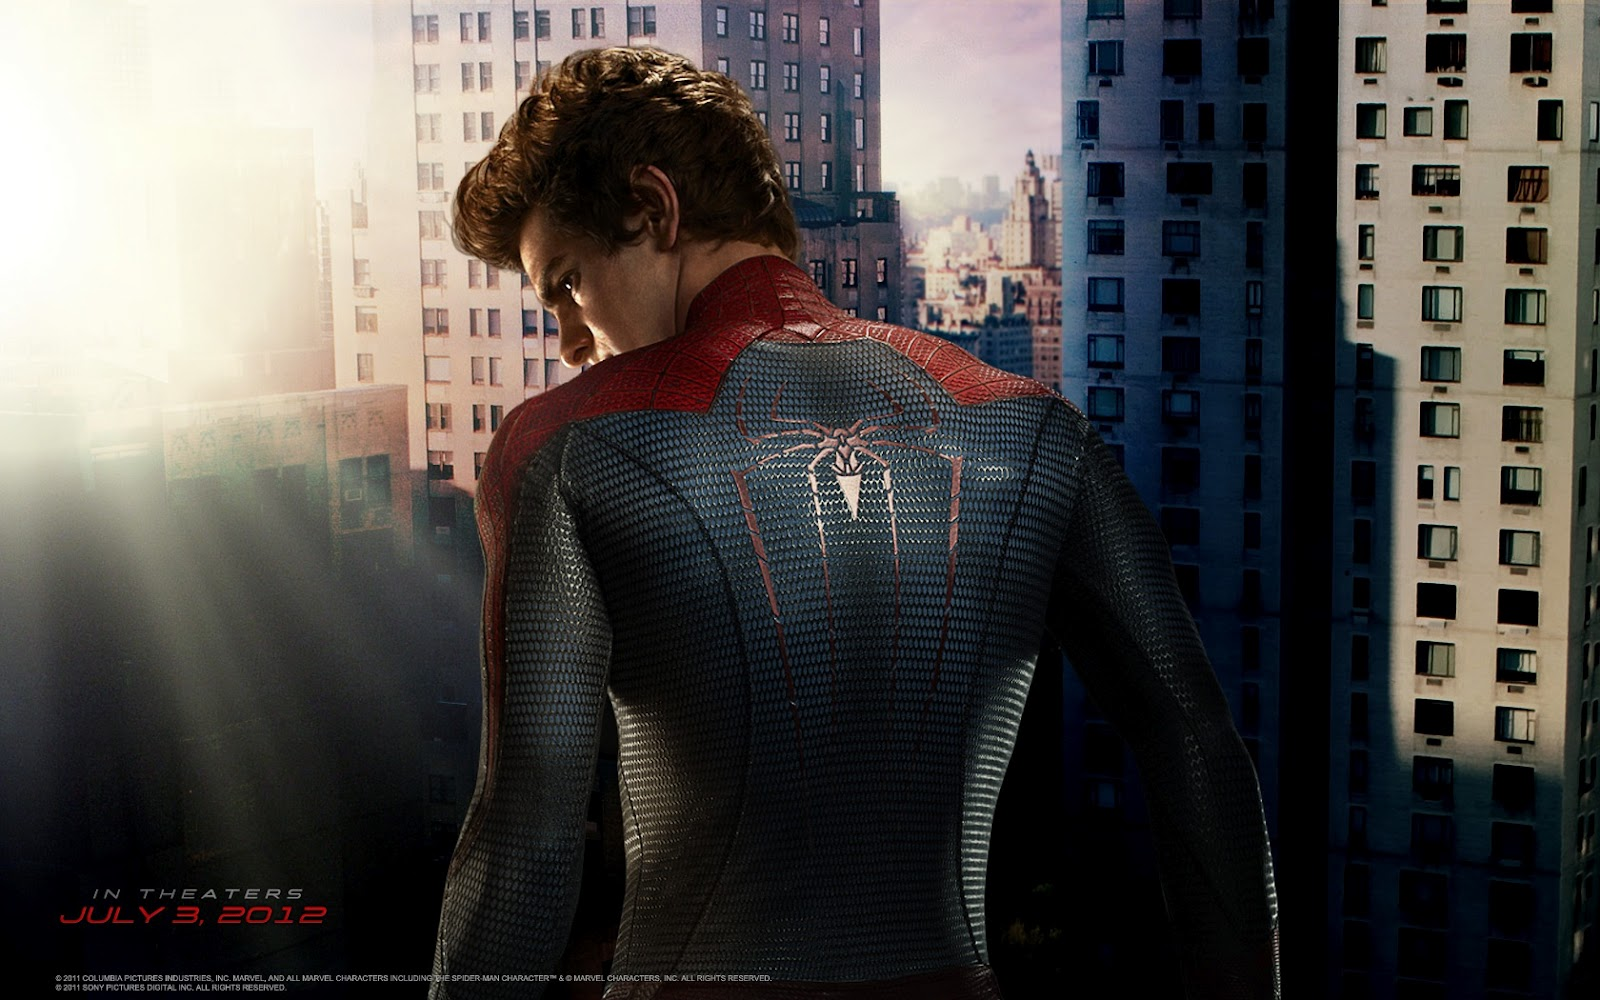 Here Are New Desktop Wallpapers For The Spider Man Rebbot Simply Called Amazing Film Stars Andrew Garfield As Peter PArker